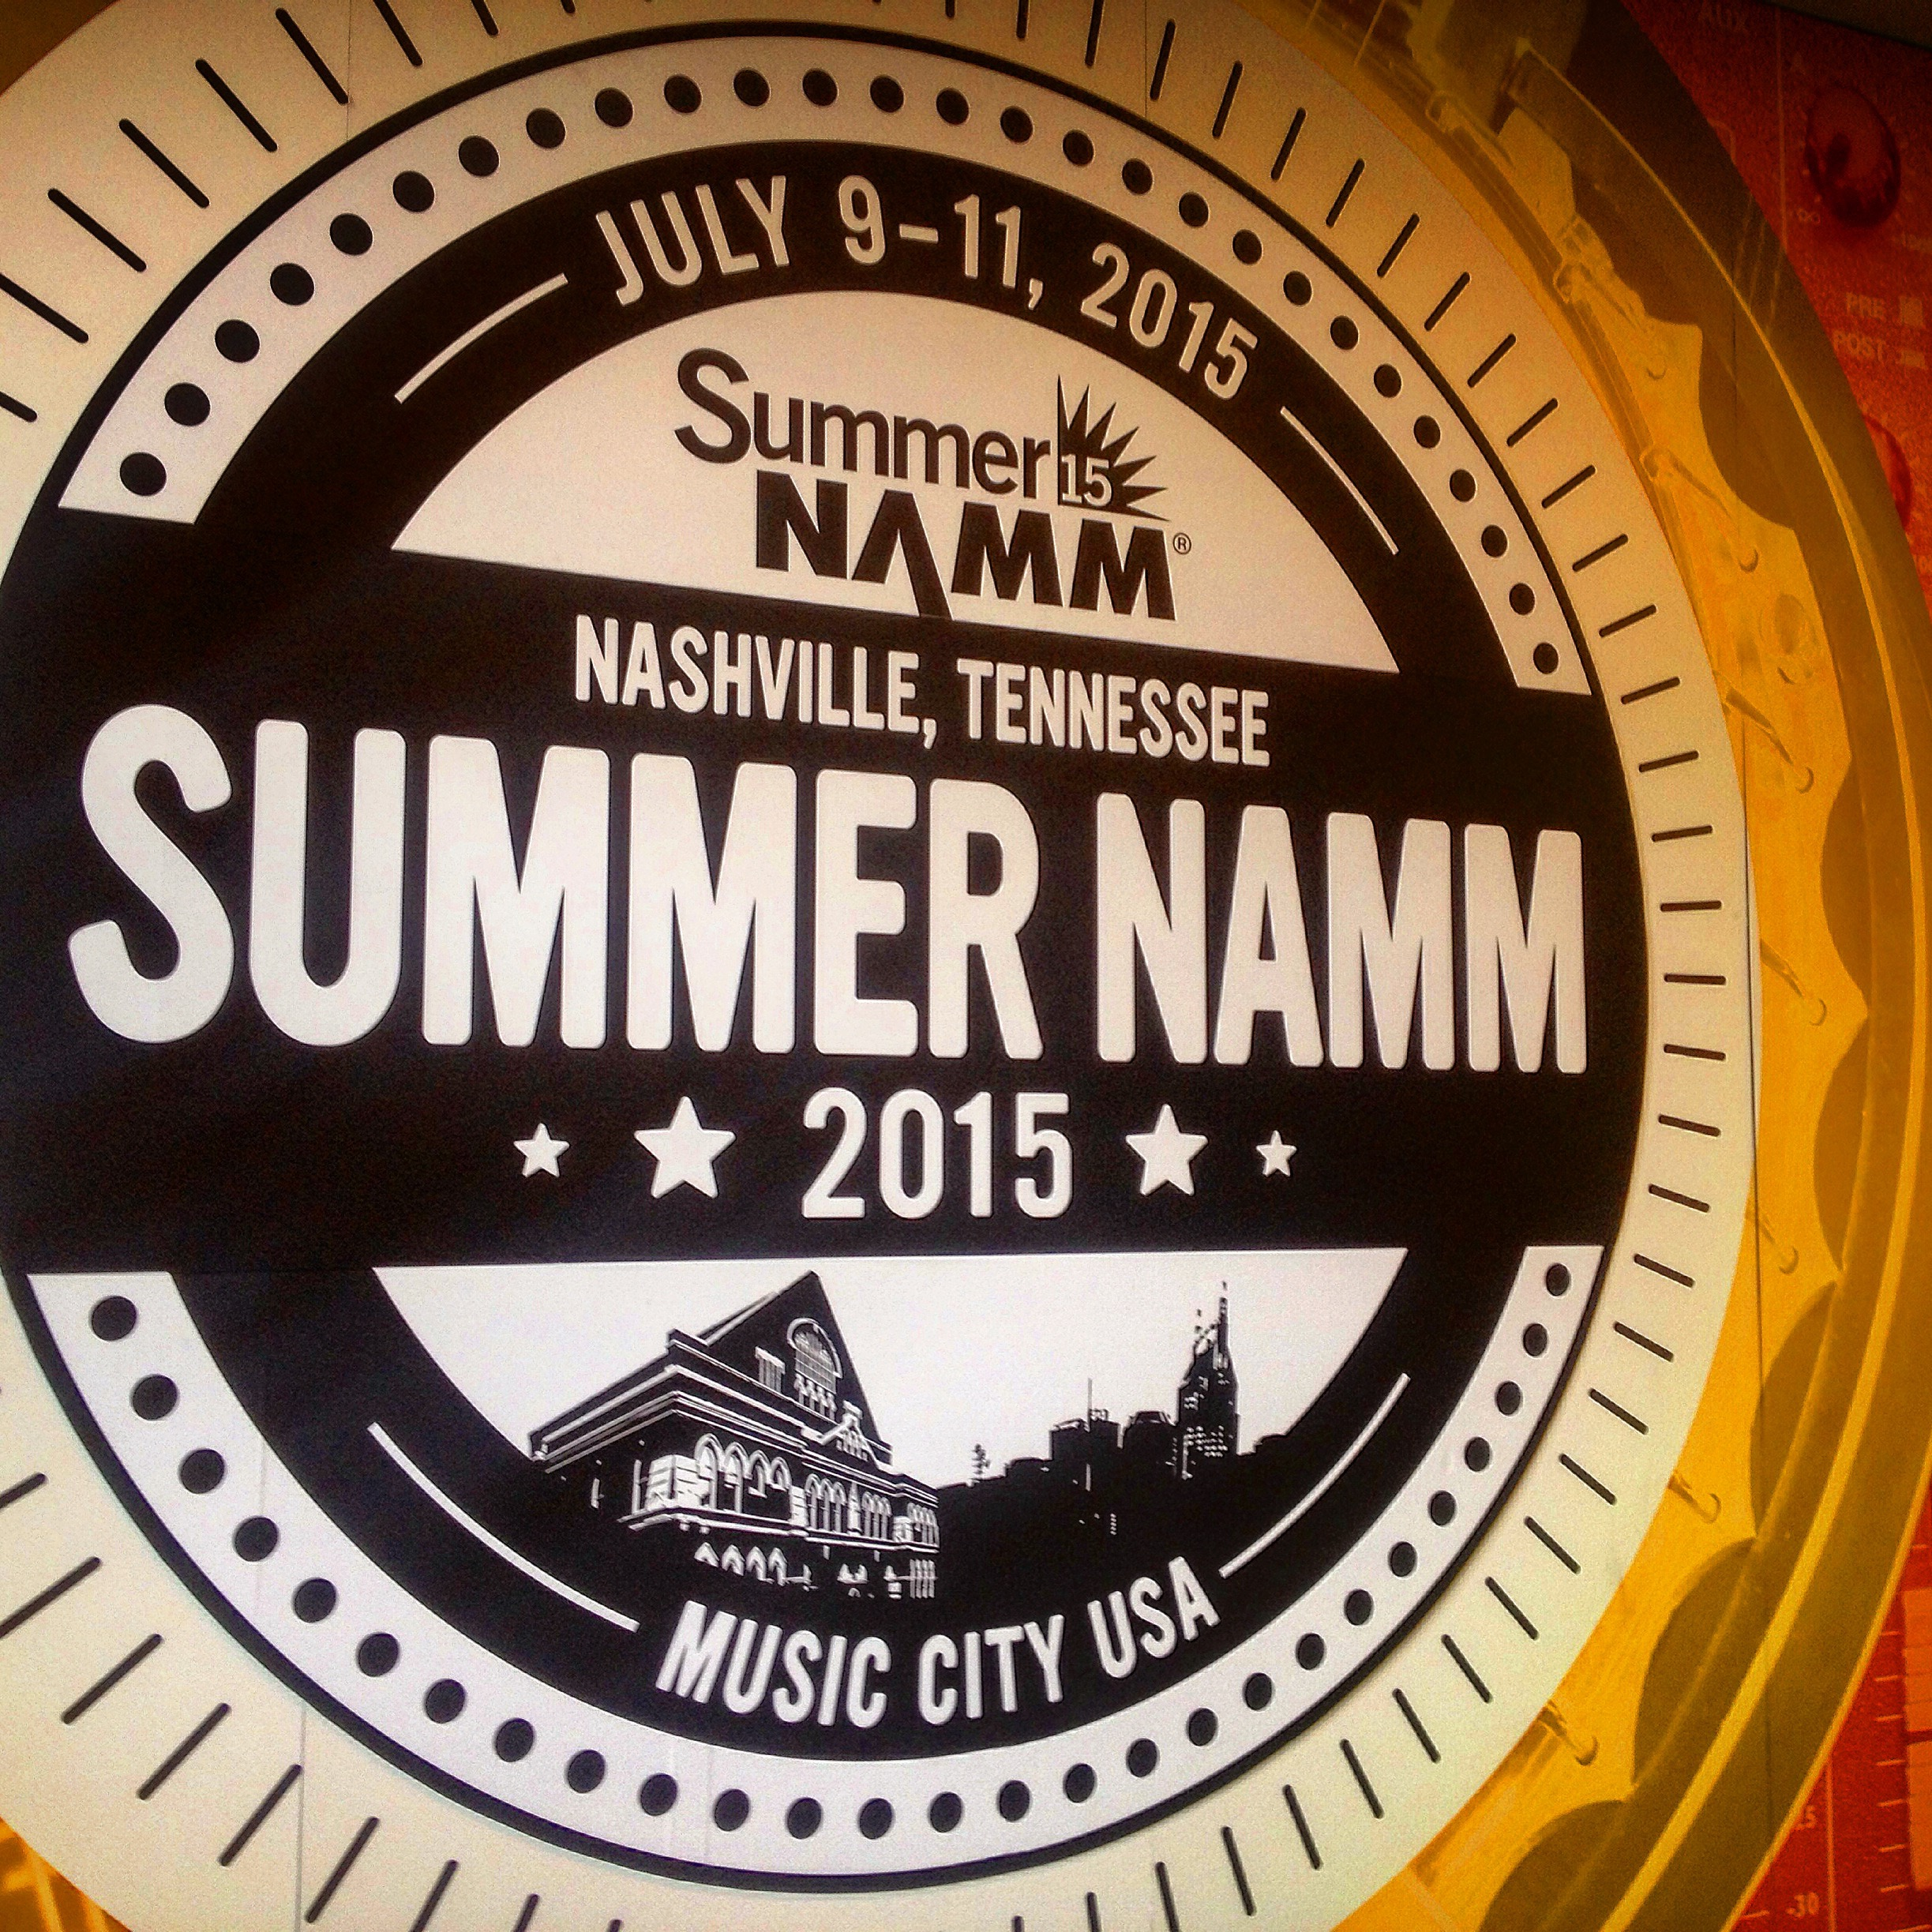 The NAMM Show is a music industry event I attend every year. This is my first SUMMER NAMM in Nashville. I got to hang out with my friends from Ultimate Ears (UE) in-ear monitors, with my buddy Norm Stockton and Mike Sessler, who recently moved to Nashville.